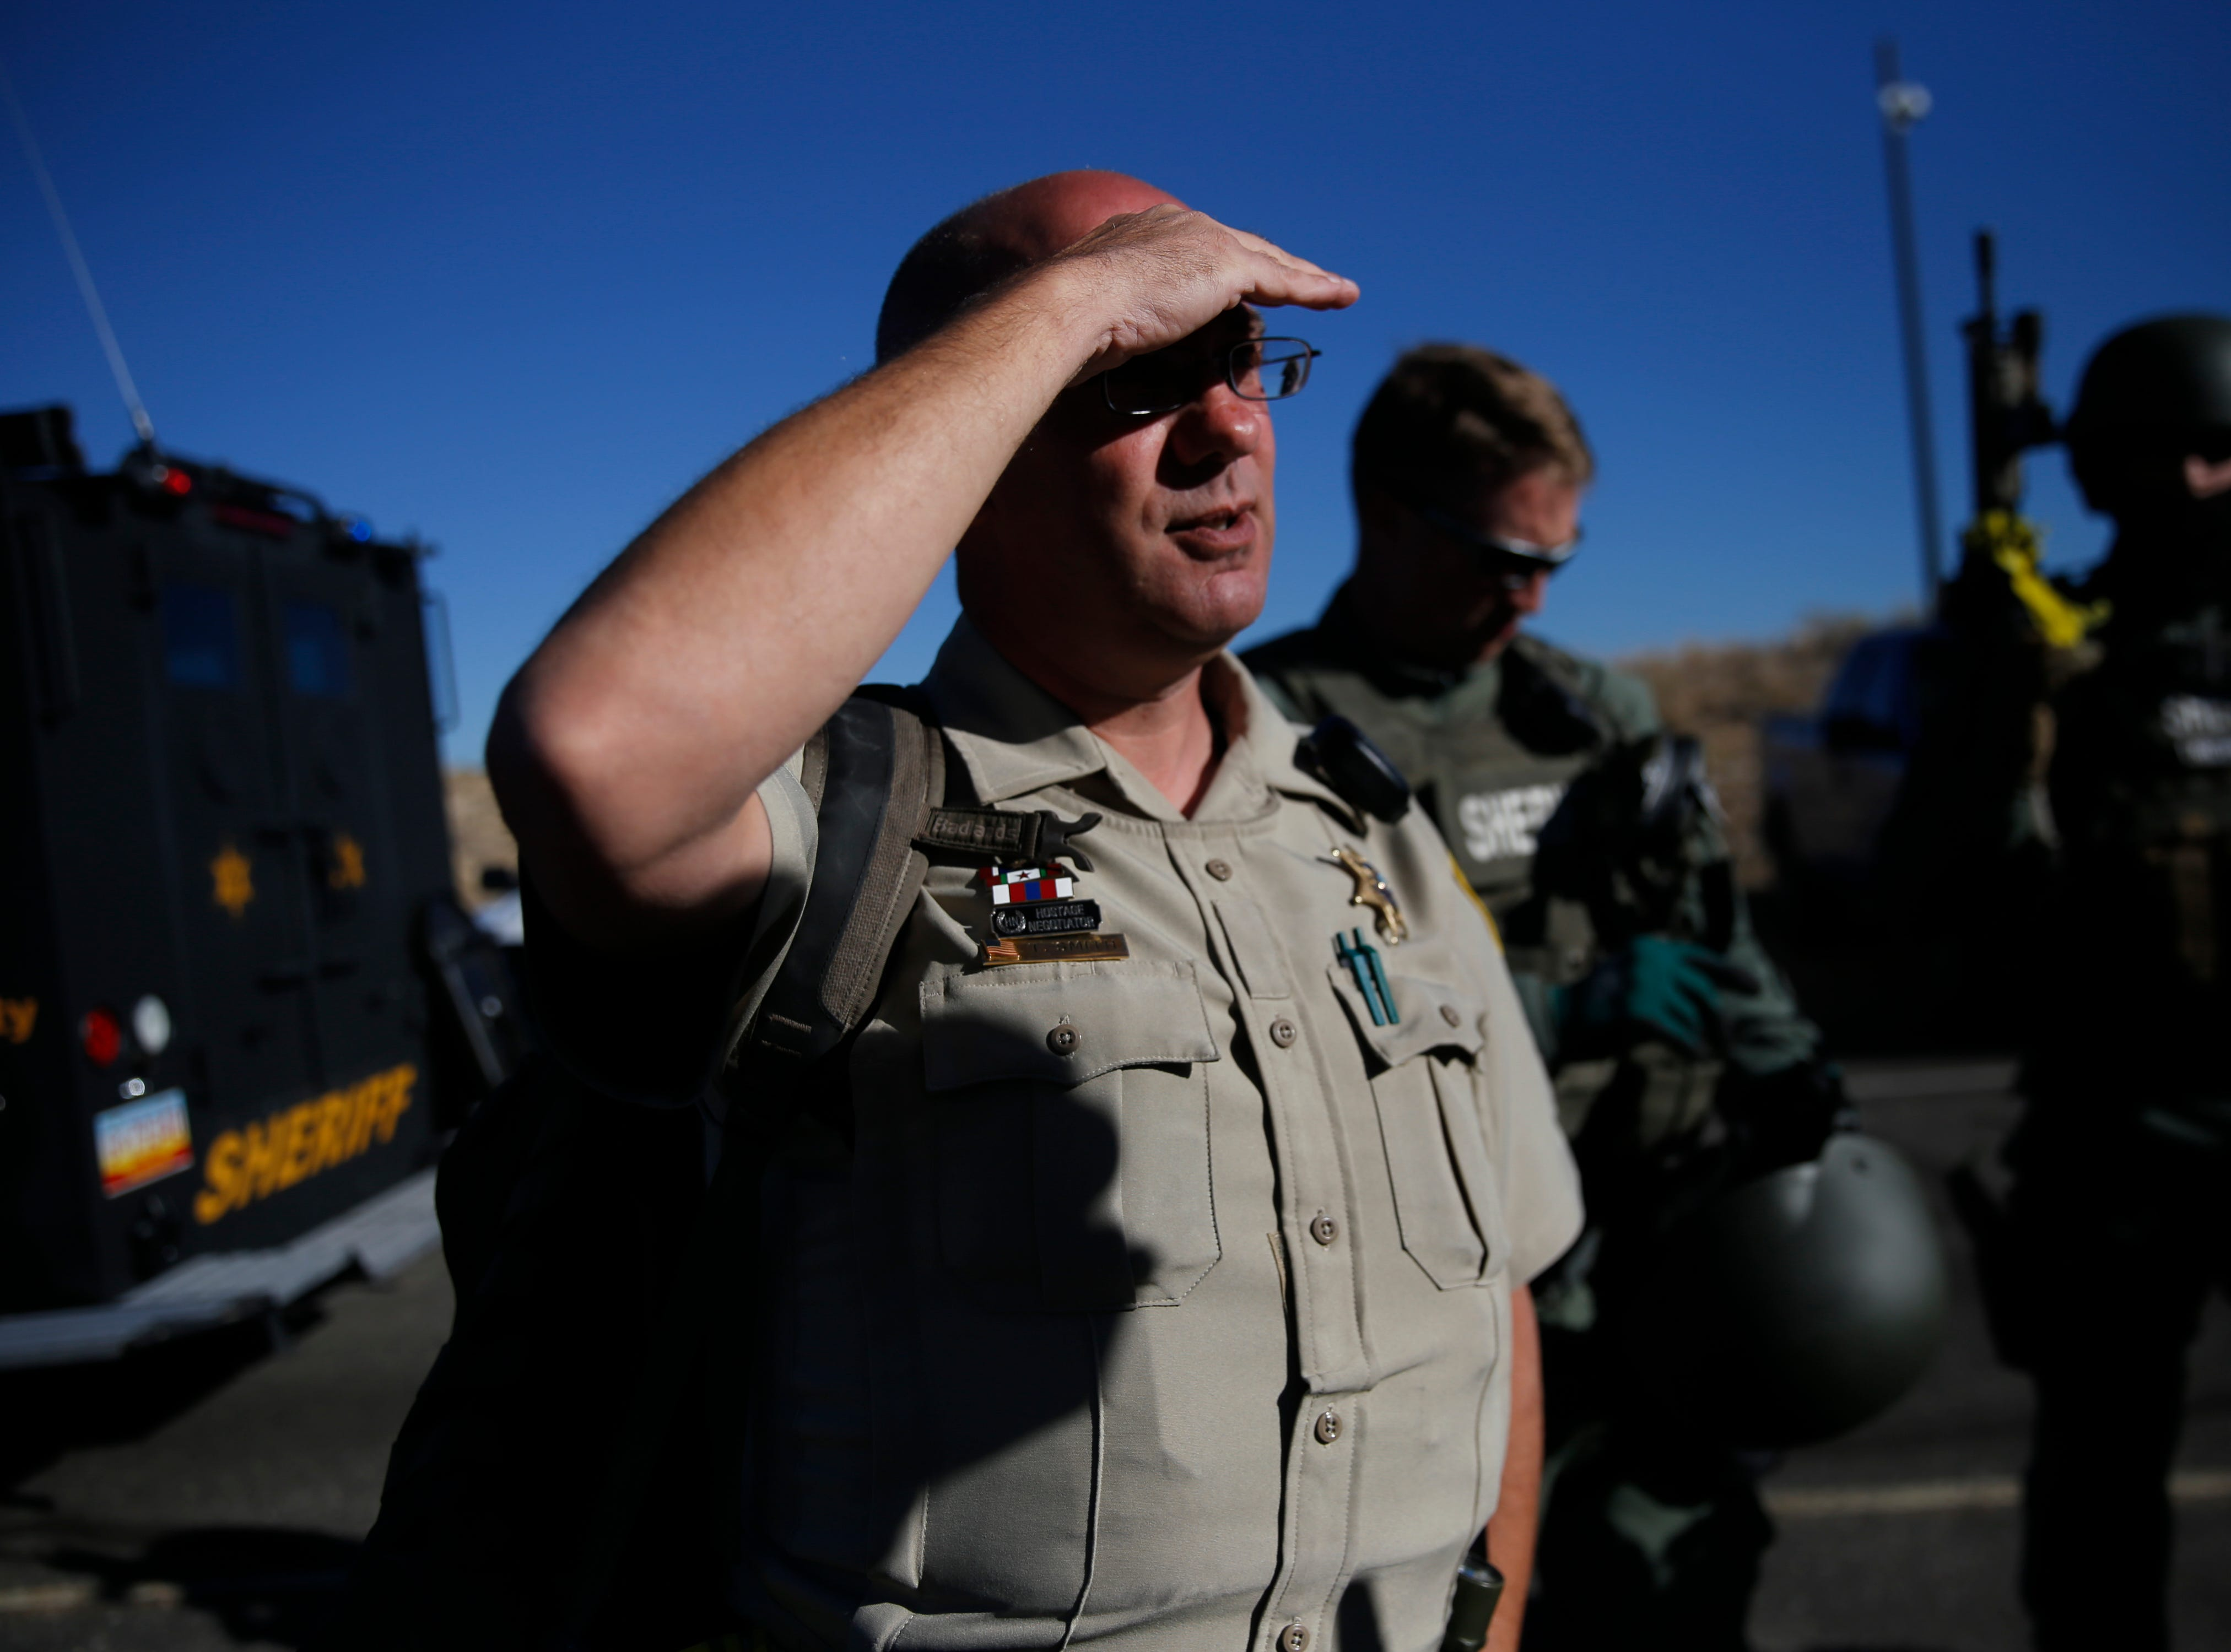 San Juan County Sheriff's Office Crisis Negotiator Cpl. Tim Smith gathers information on a simulated prison riot, Wednesday, Sept. 12, 2018 at the San Juan County Detention Center in Farmington.